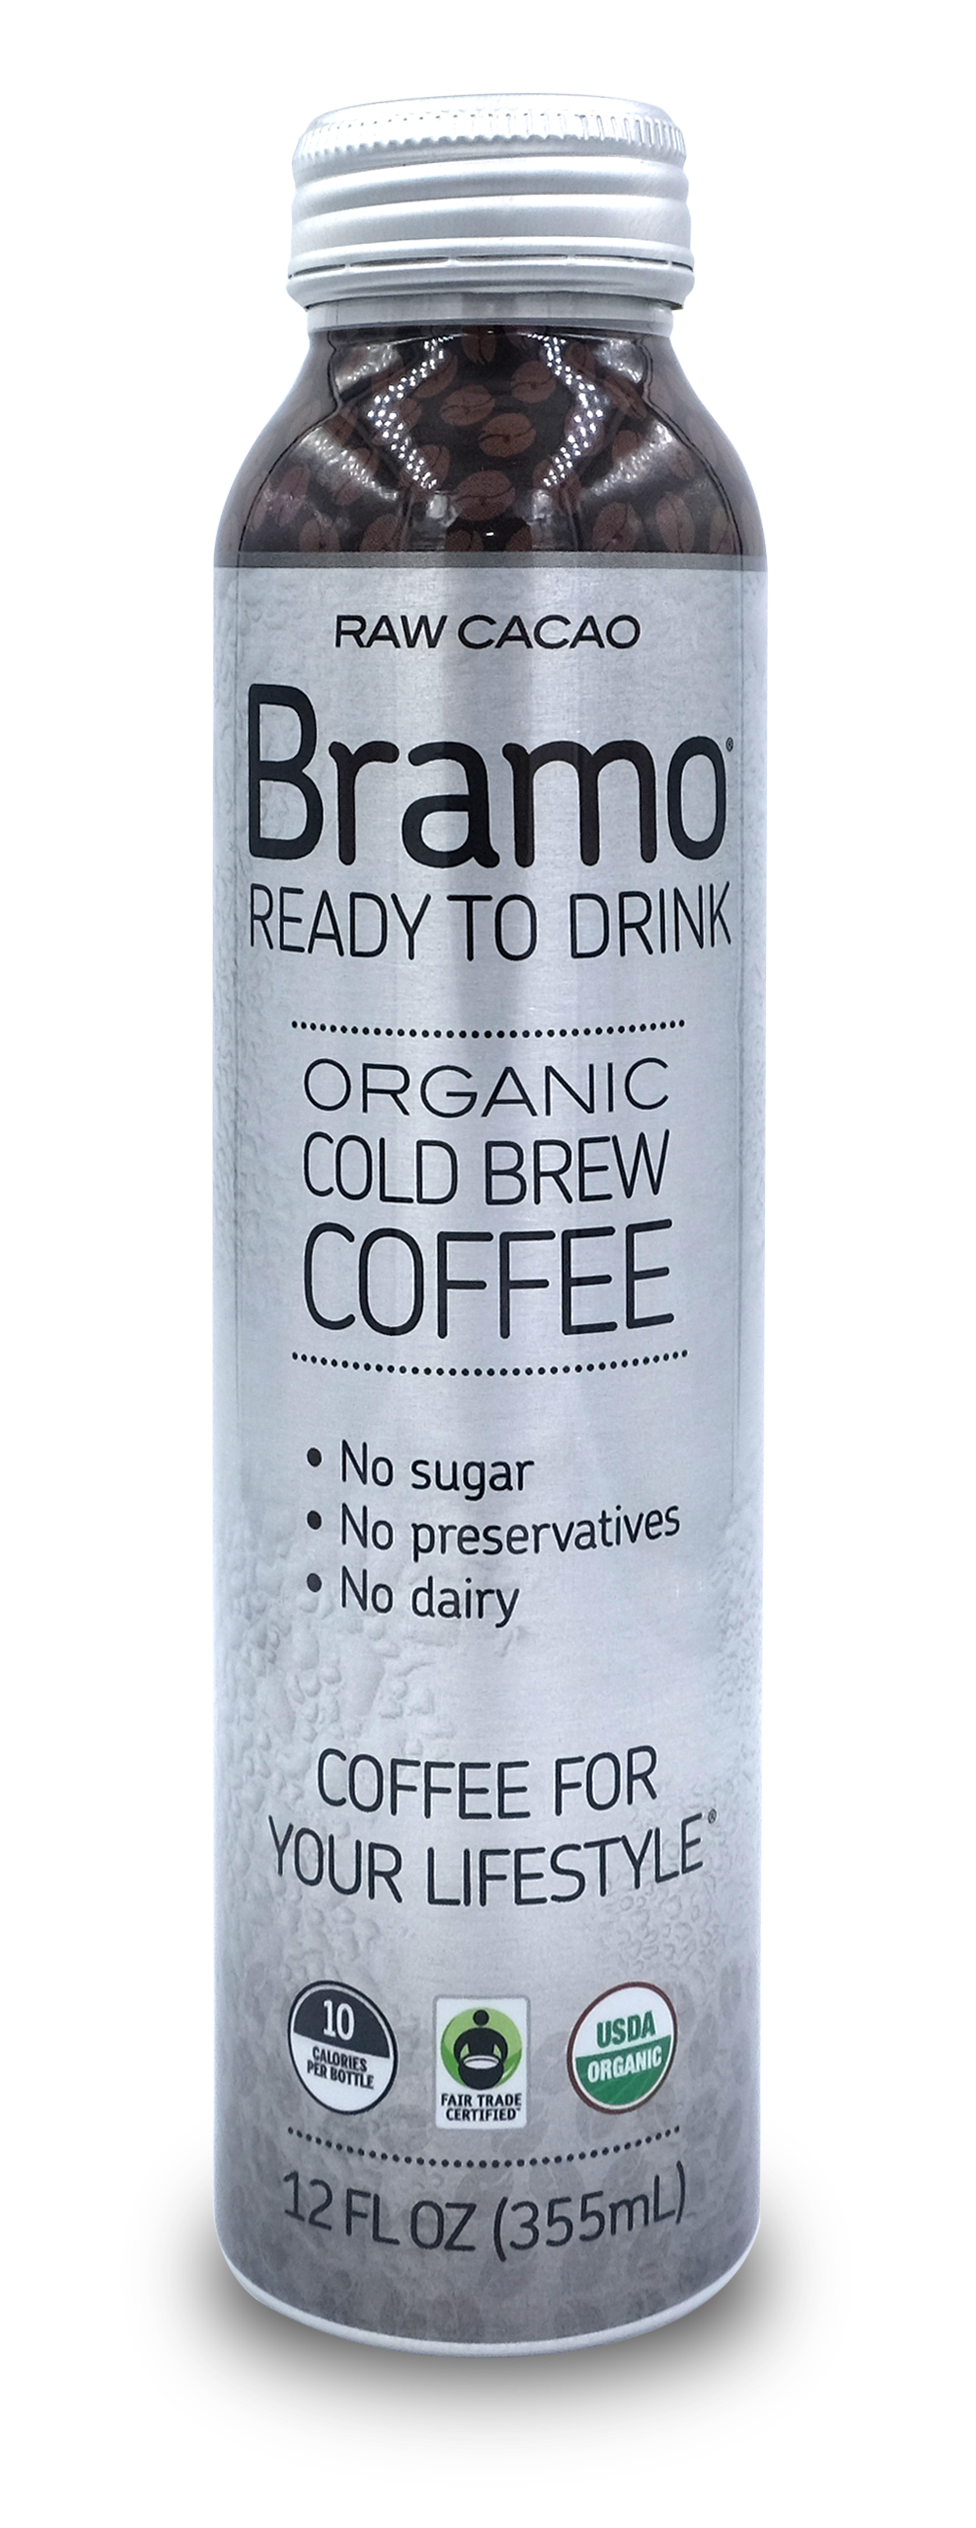 Bramo Raw Cacao 12Fl oz